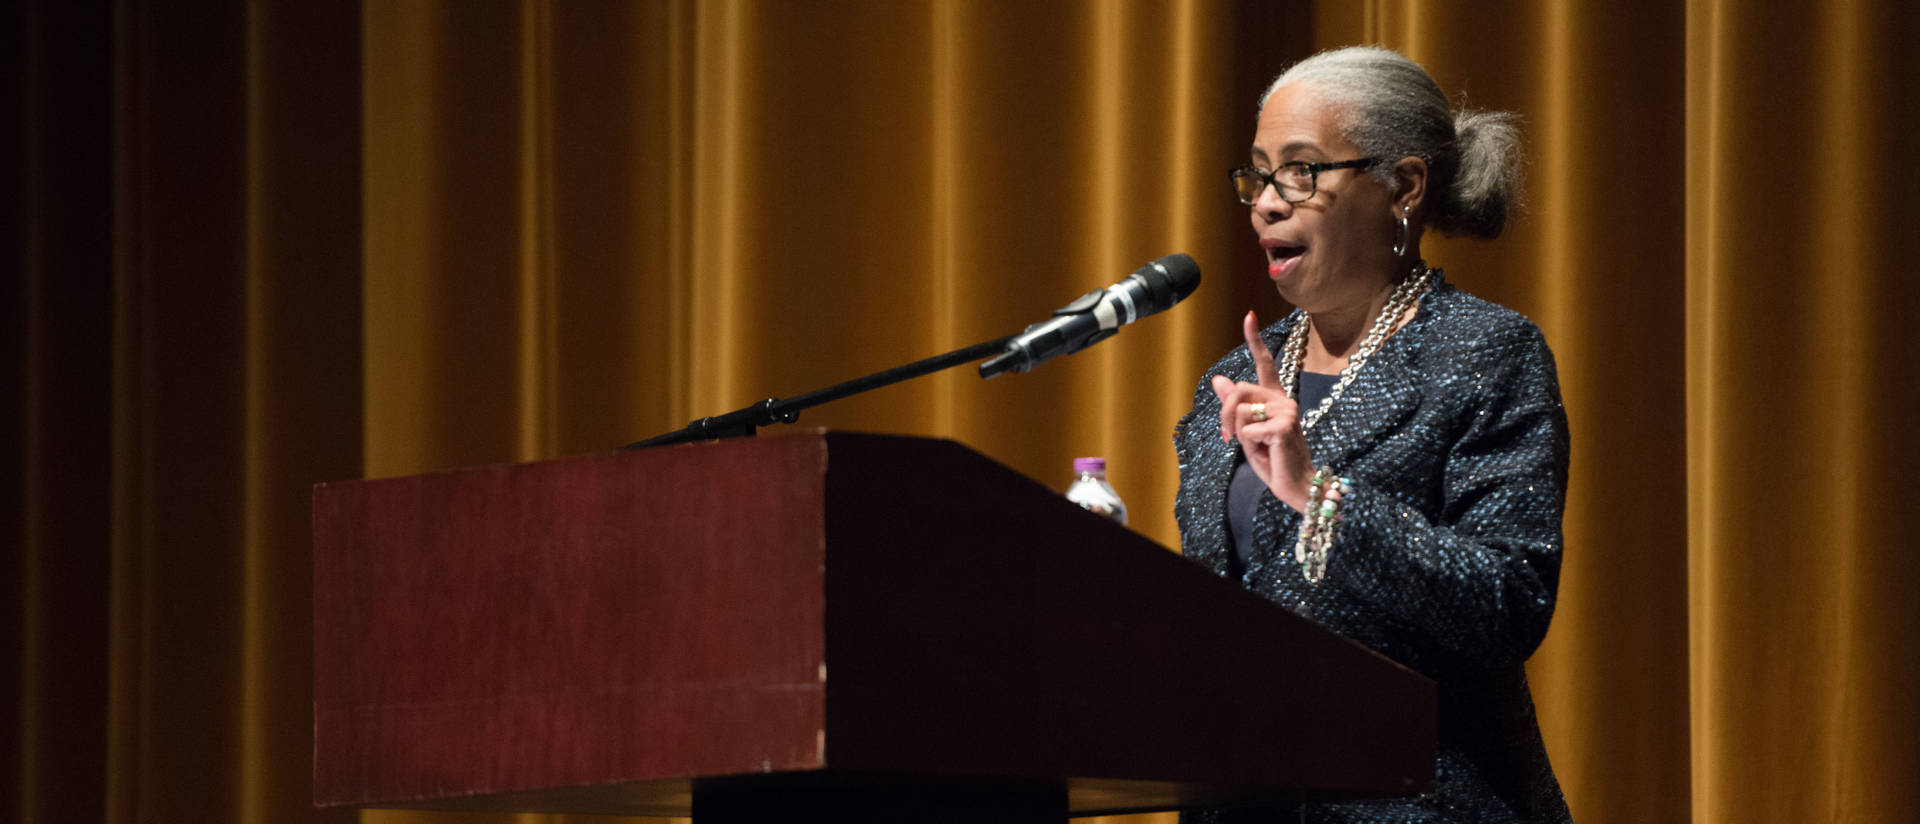 Gloria Ladson-Billings presents during the 2017 Martin Mogensen Education Lecture on culturally relevant pedagogy.